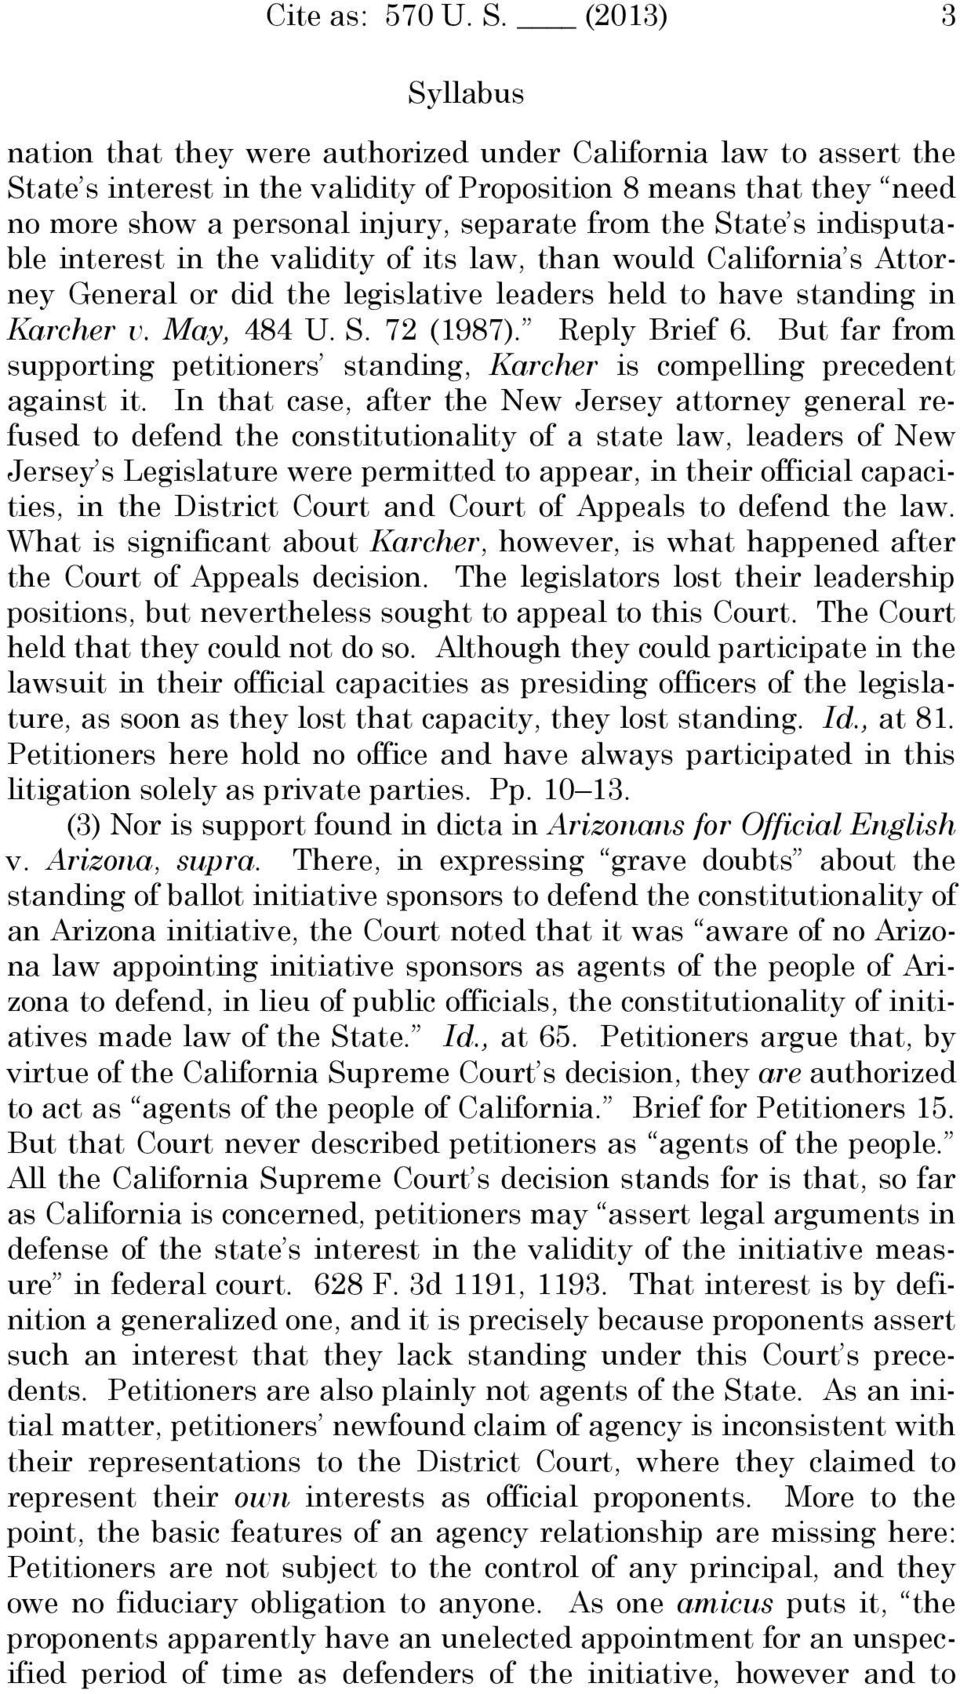 from the State s indisputable interest in the validity of its law, than would California s Attorney General or did the legislative leaders held to have standing in Karcher v. May, 484 U. S. 72 (1987).